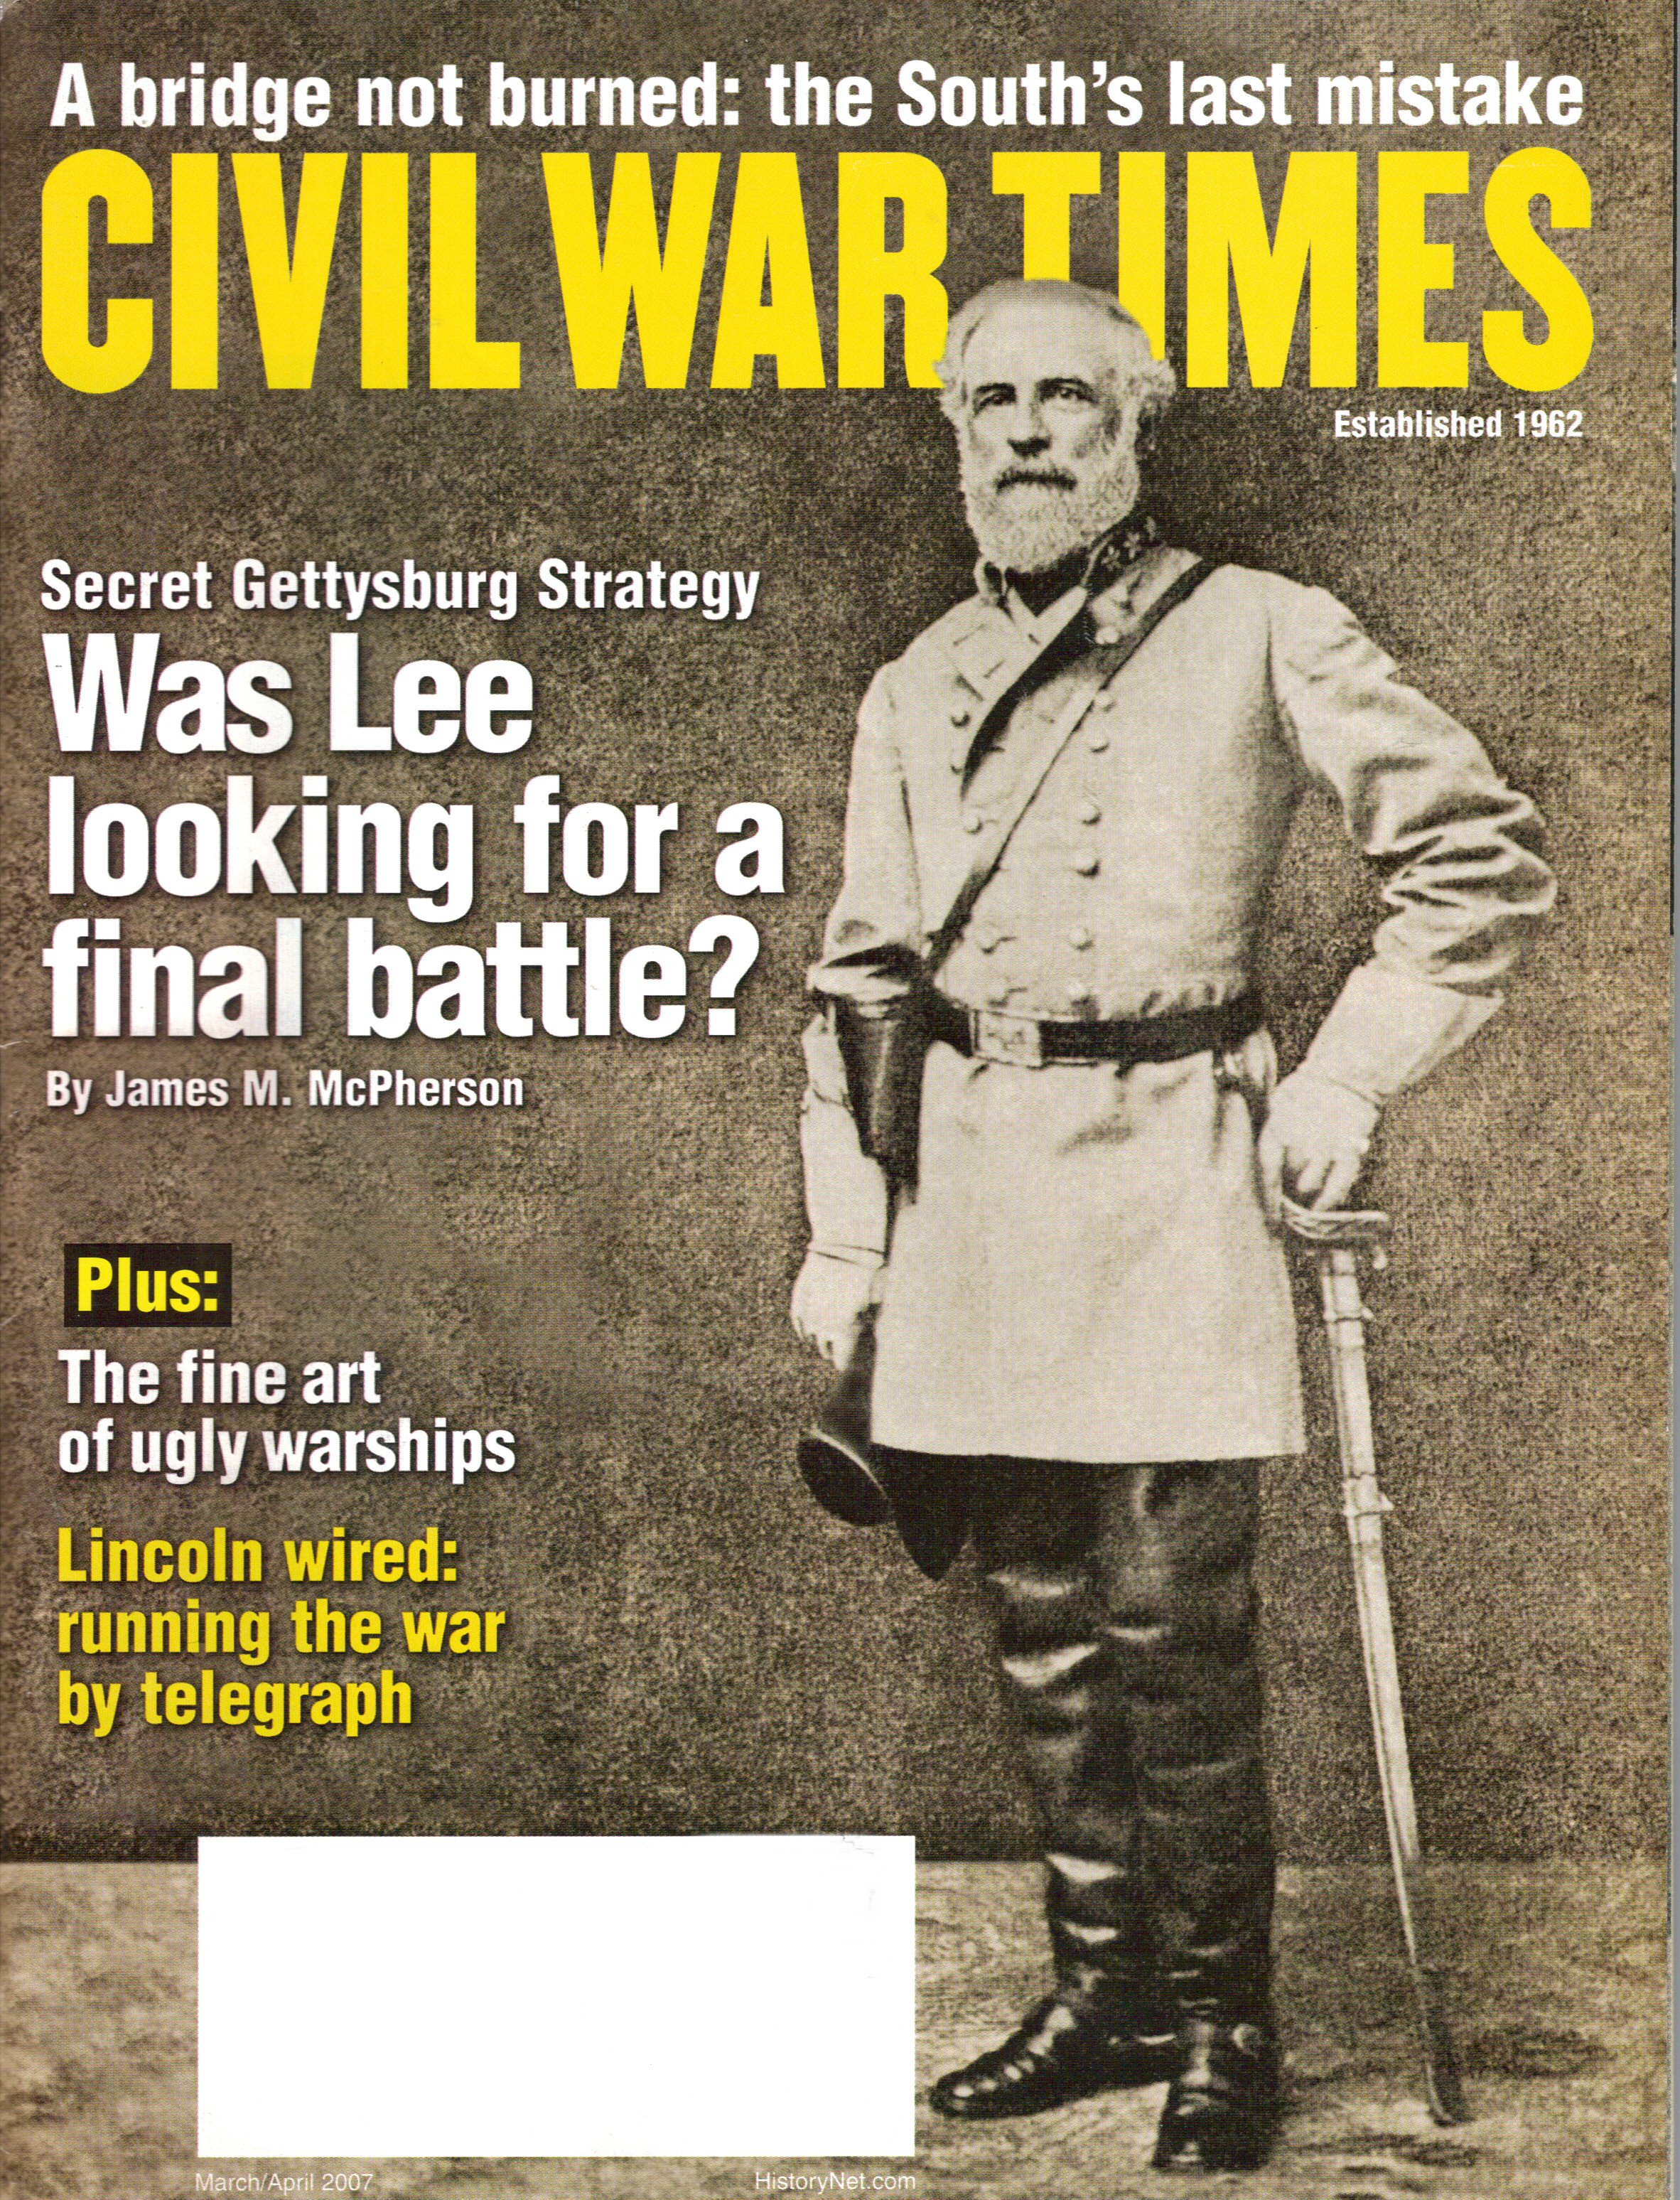 Civil War Times, Volume 46, Number 2 (March/April 2007)